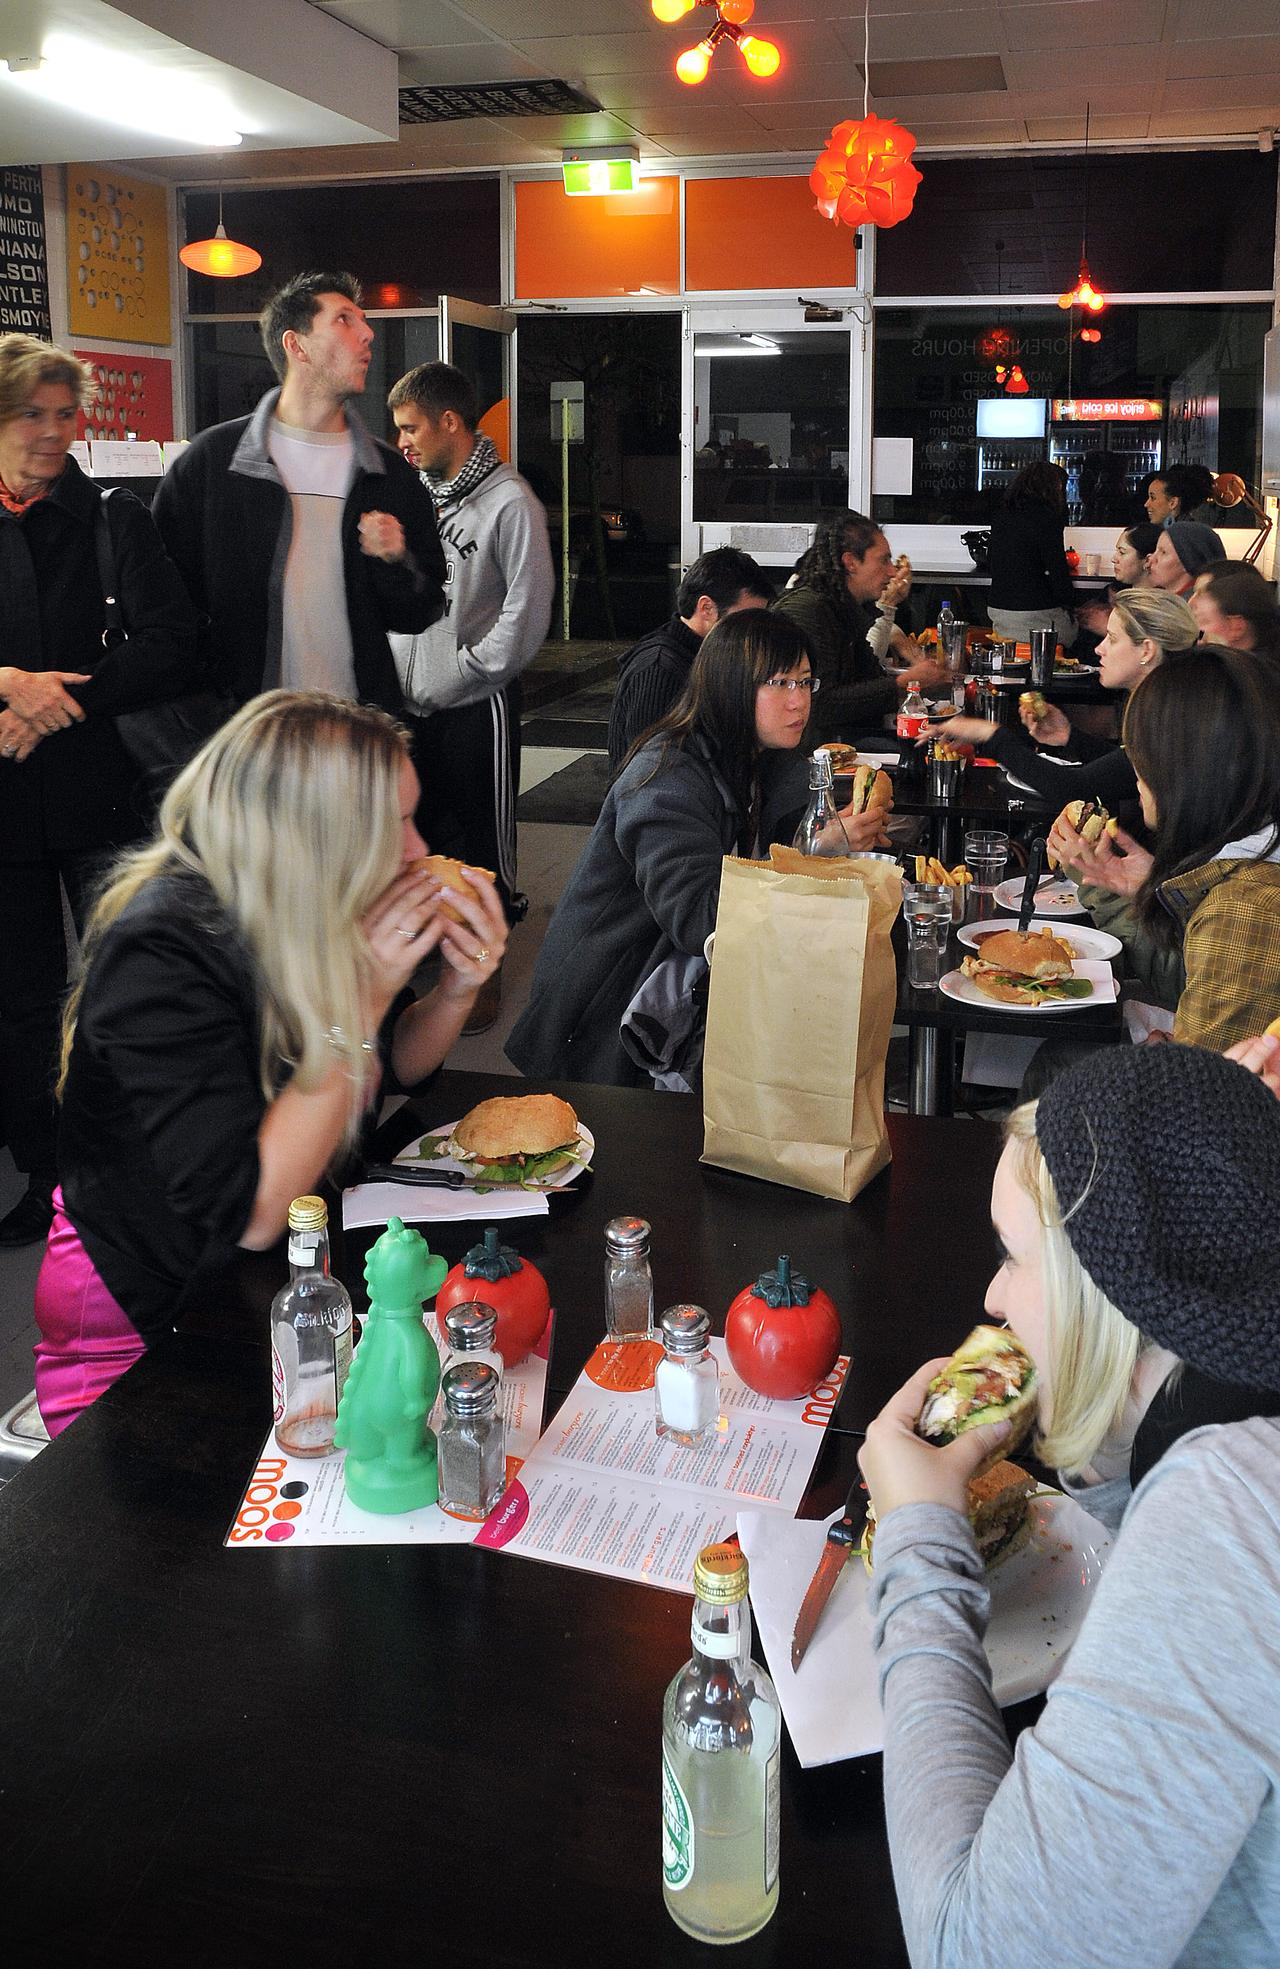 Missy Moos 400 Sth Terrace South Fremantle where one of the dishes available is the Steak Sandwich called Old King Cole